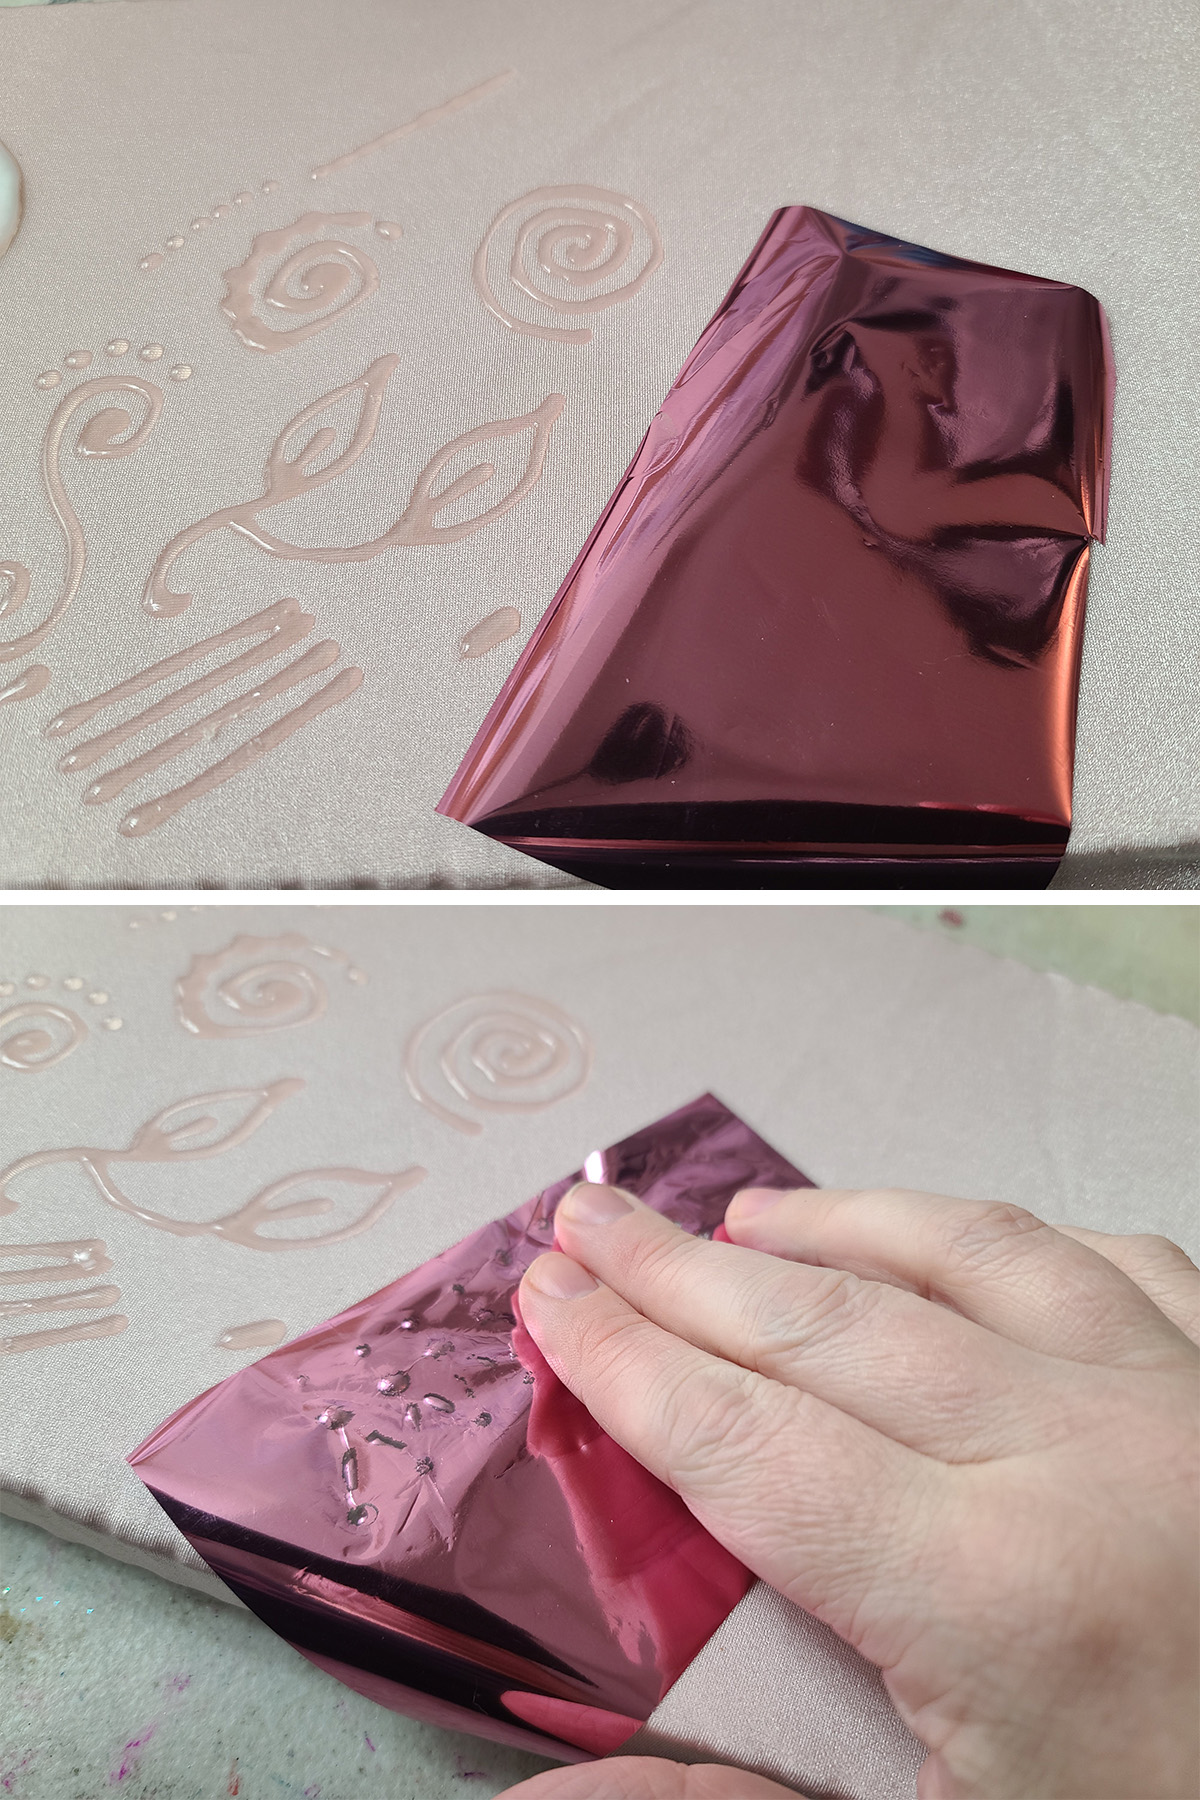 A two part compilation image showing a piece of pink foil being laid over piped glue designs, and a hand rubbing it.